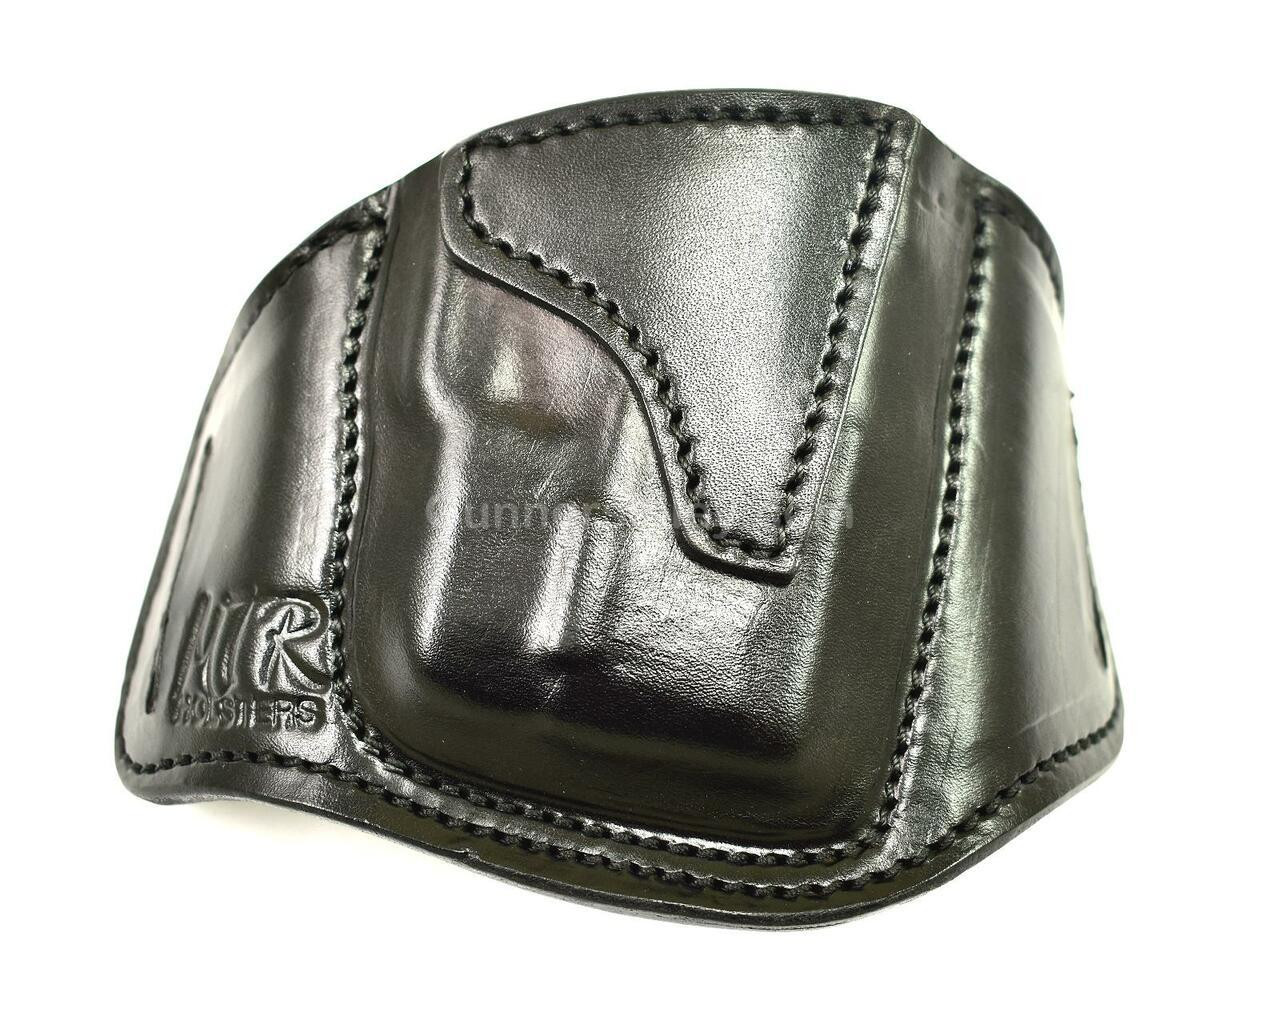 RH Black MTR Custom Deluxe Full Size Pancake Holster for a Sig P365 with a Crimson Trace LG-422 Laser Mounted - Front View